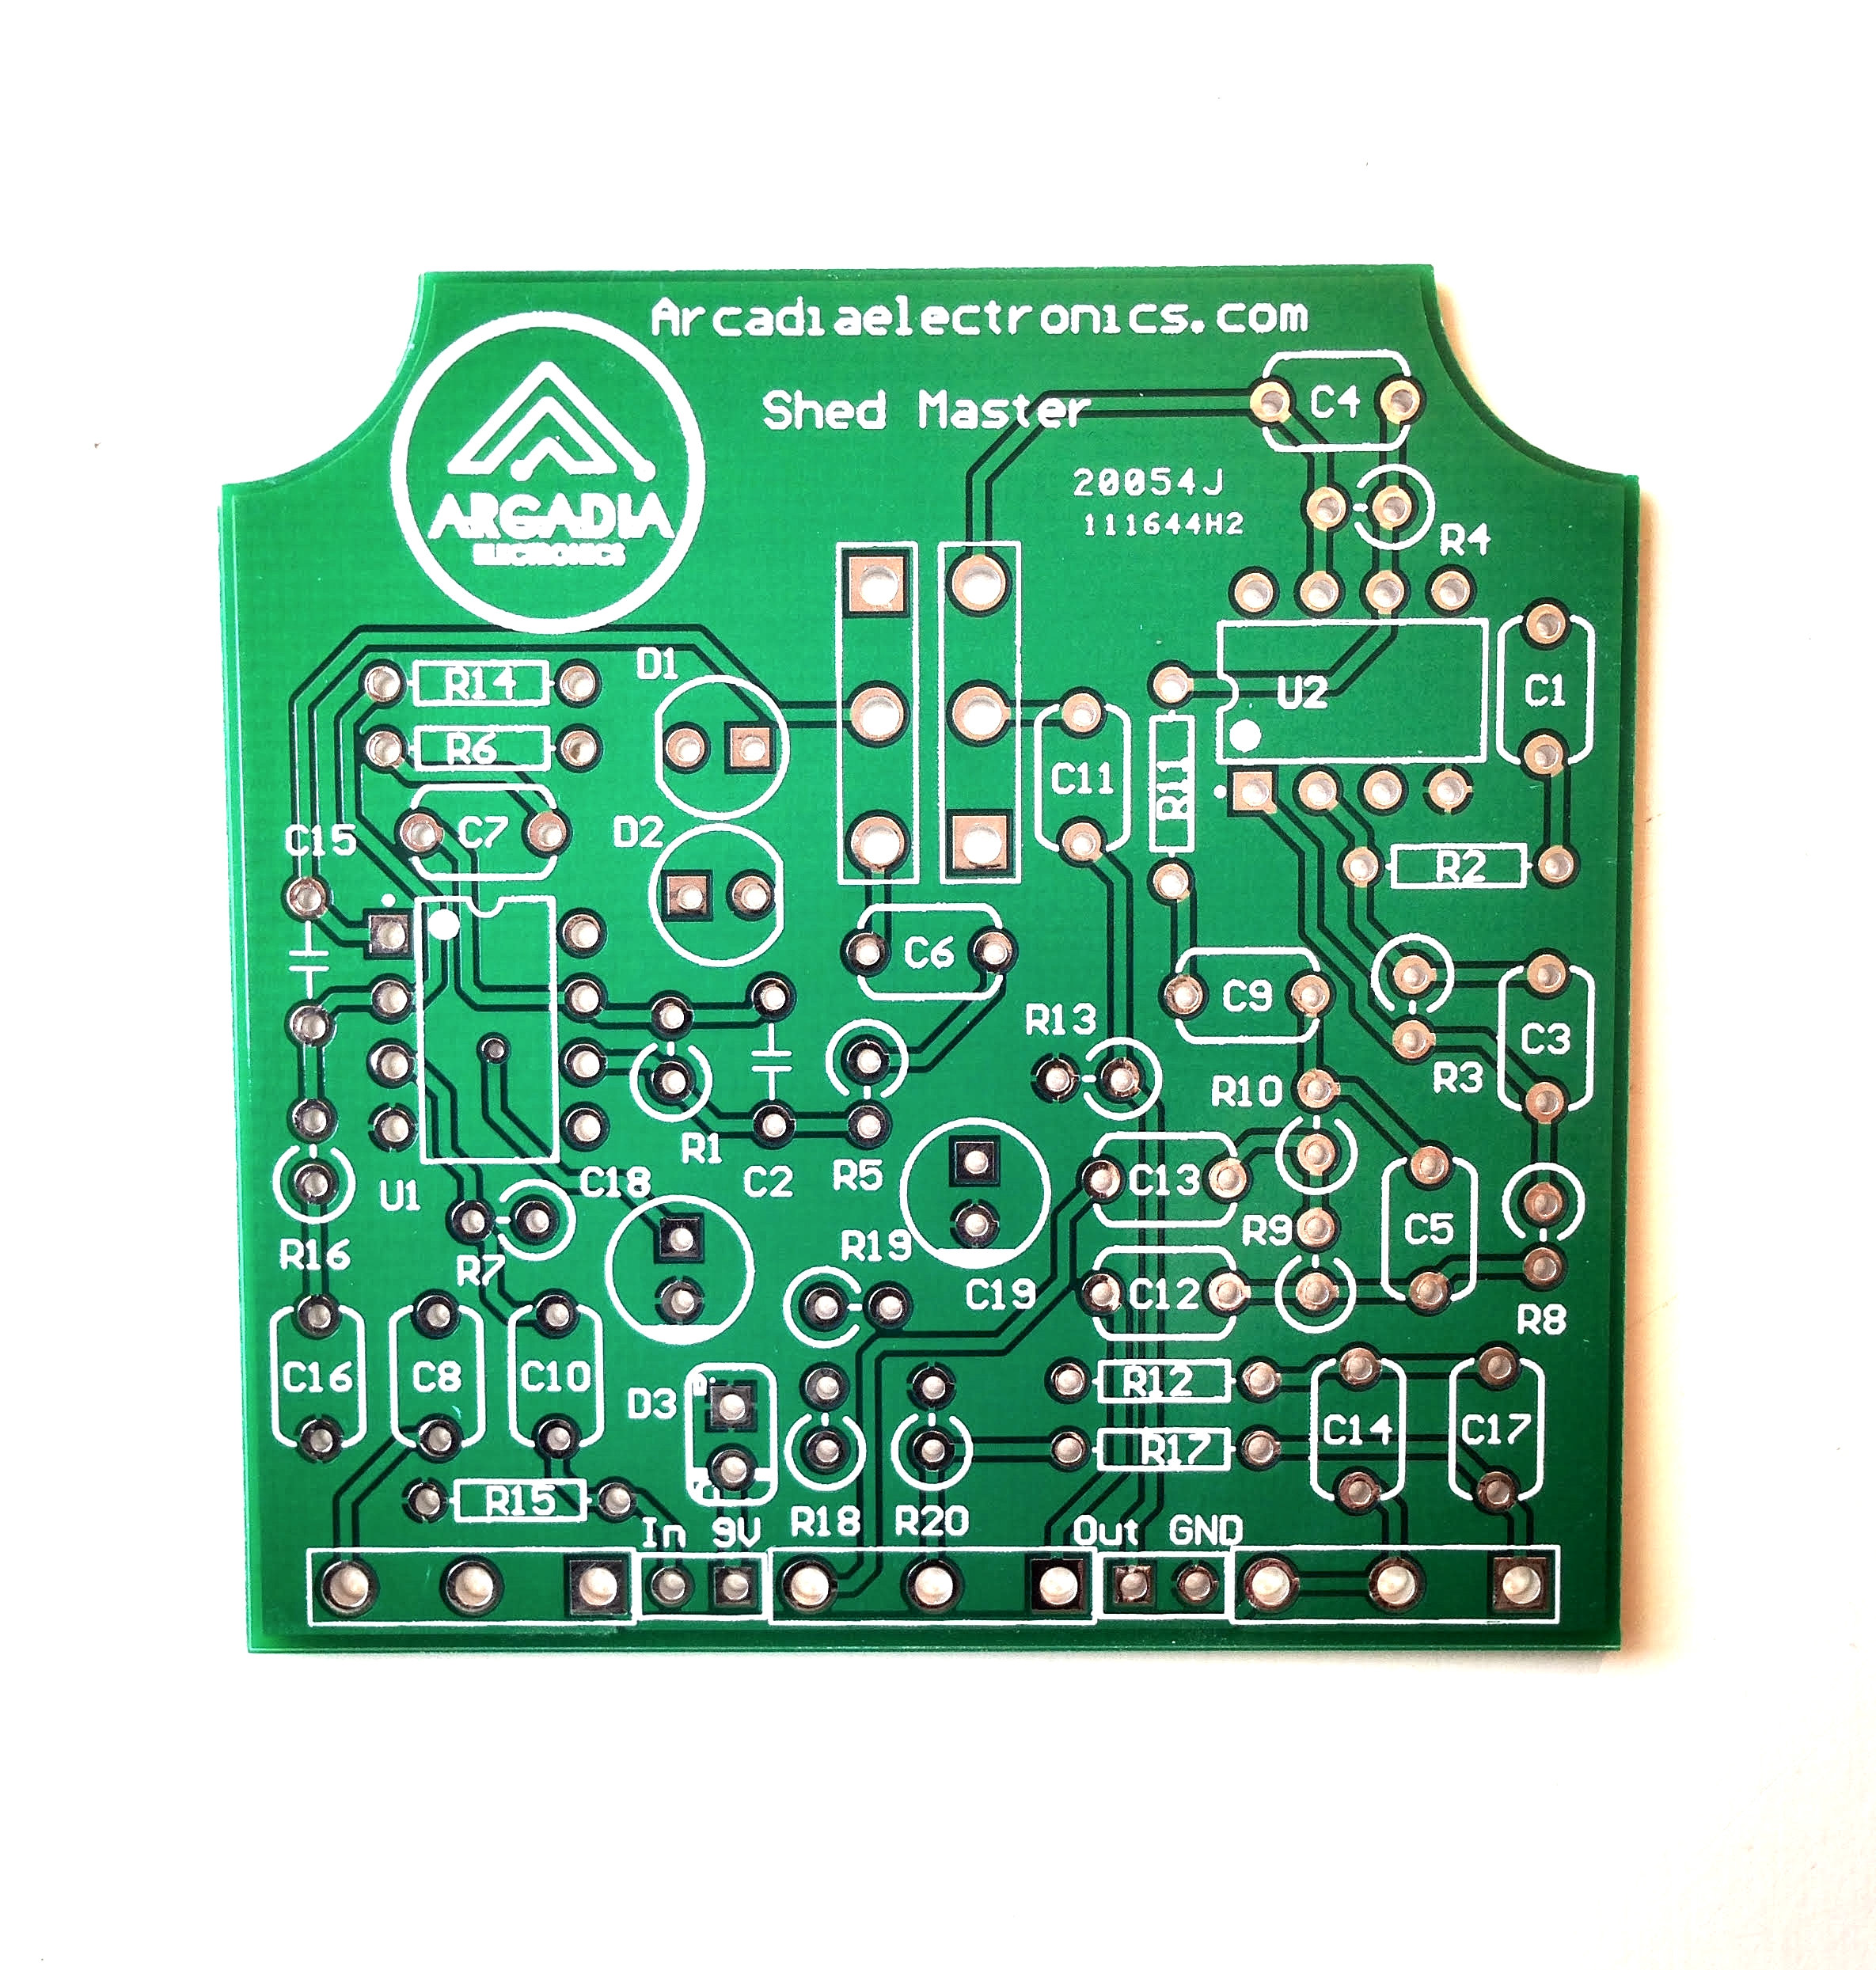 Make you own effect pedals, Kits and parts